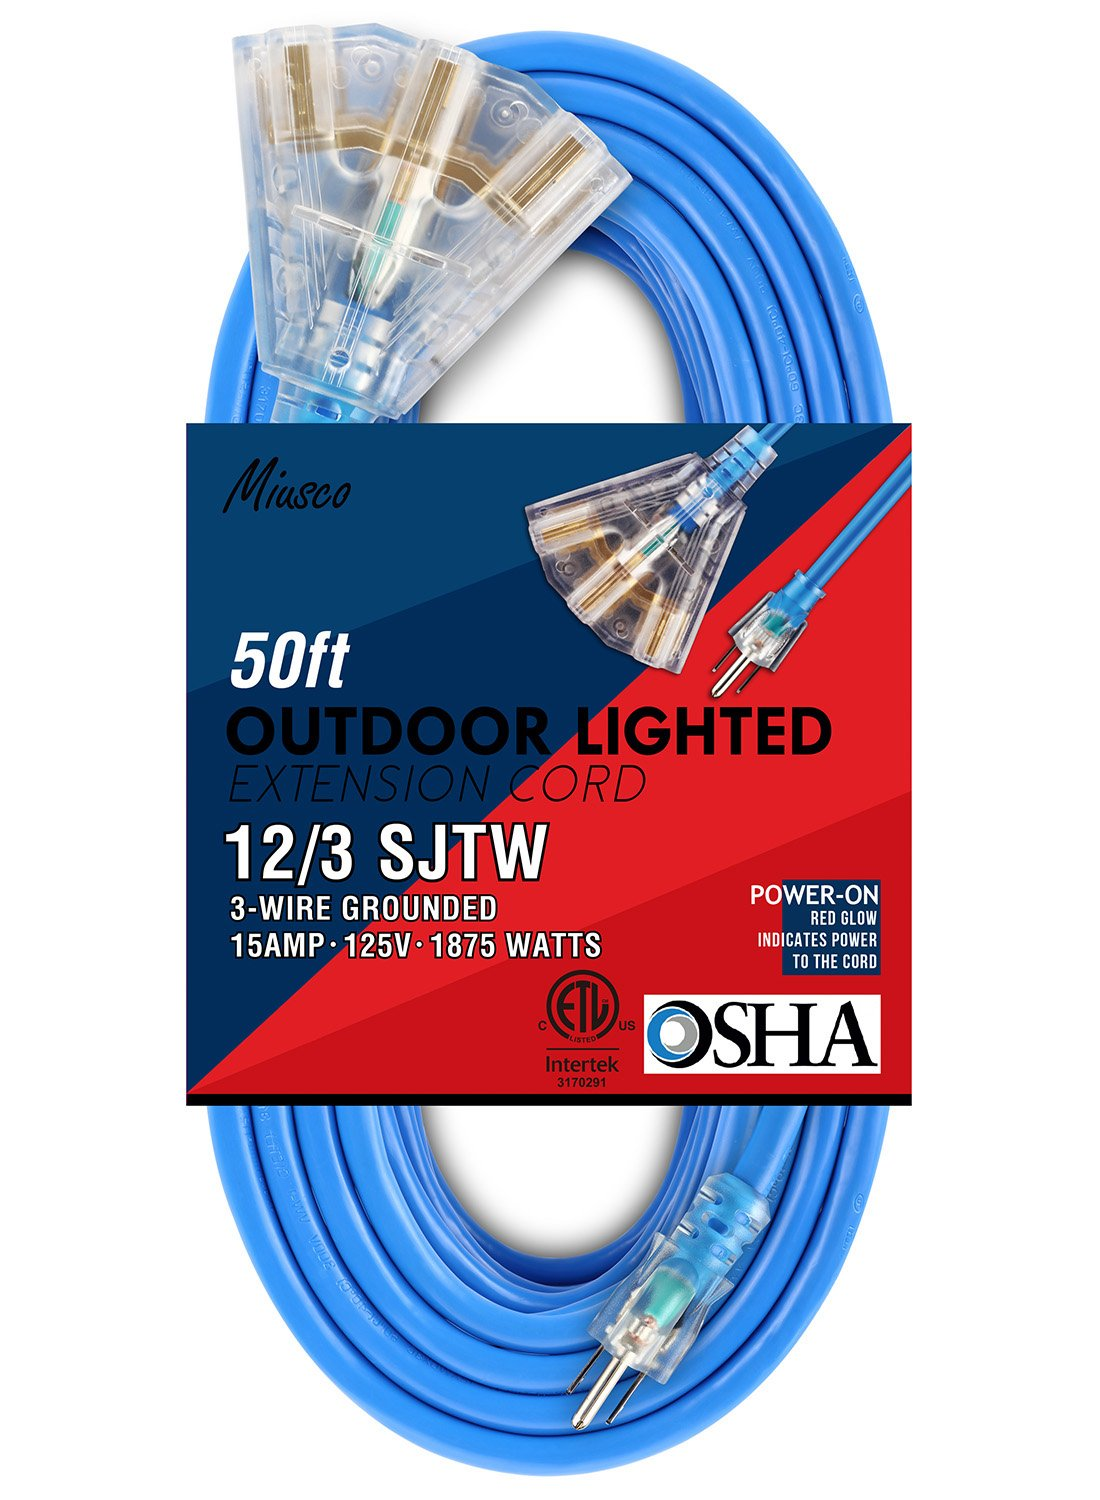 Miusco 50 Ft Extension Cord 12 Gauge 3 Prong Outdoor Sjtw Replacement Electrical Plugs 15amp 125v Ebay Triple Outlets Lighted Plug Heavy Duty Fluorescent Blue